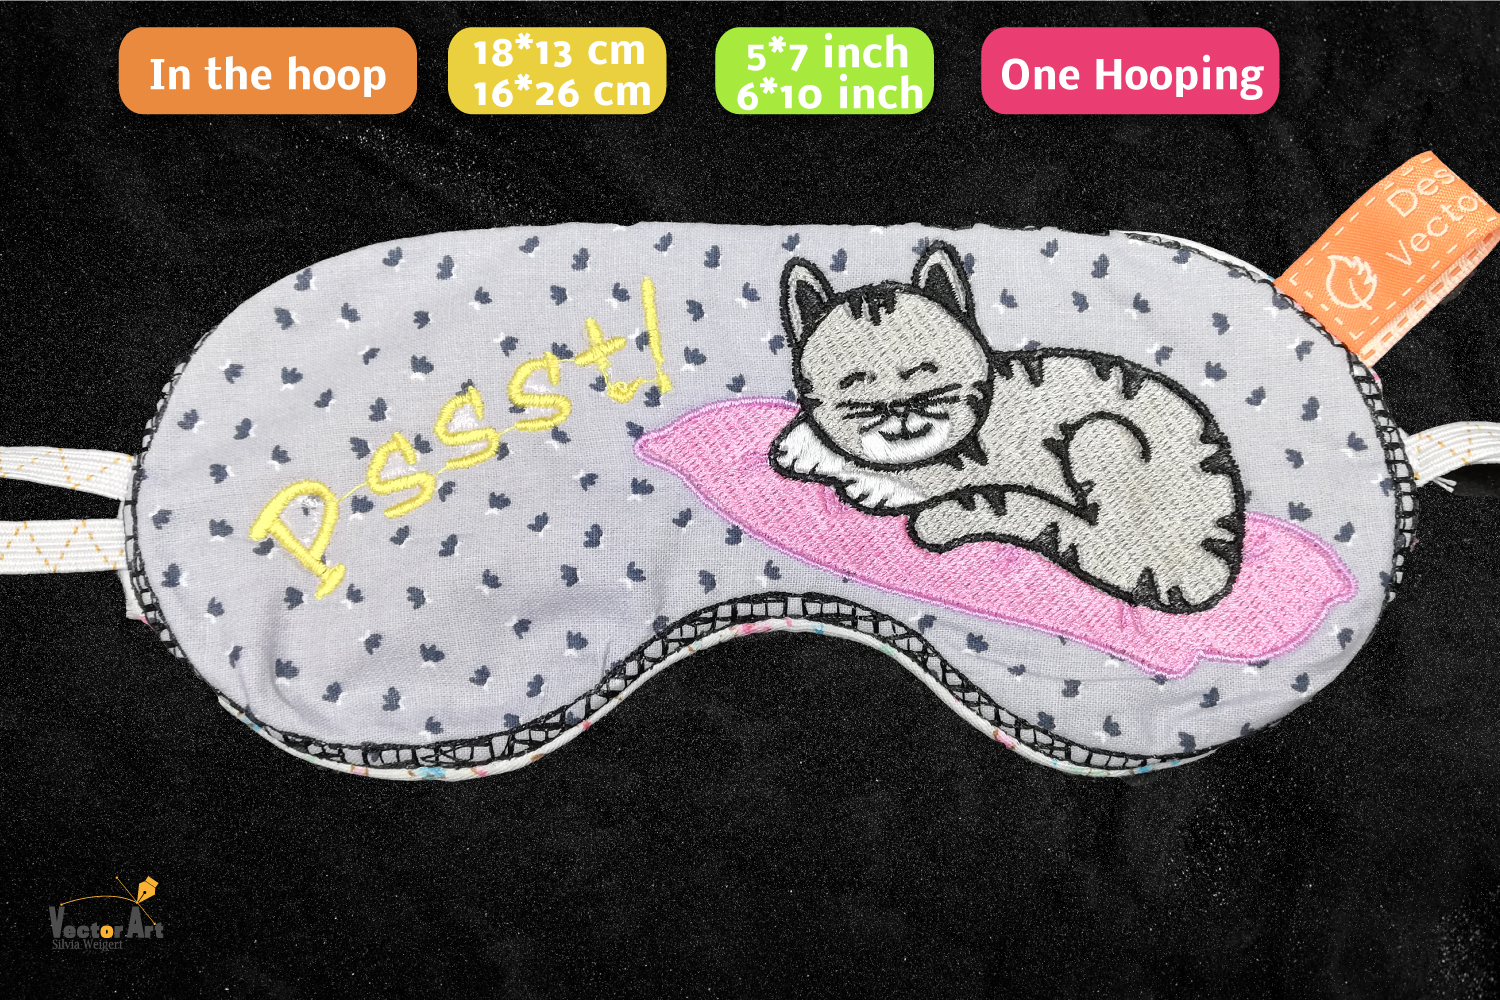 ITH - Sleeping Mask with cute Cat Embroidery - Embroidery example image 3